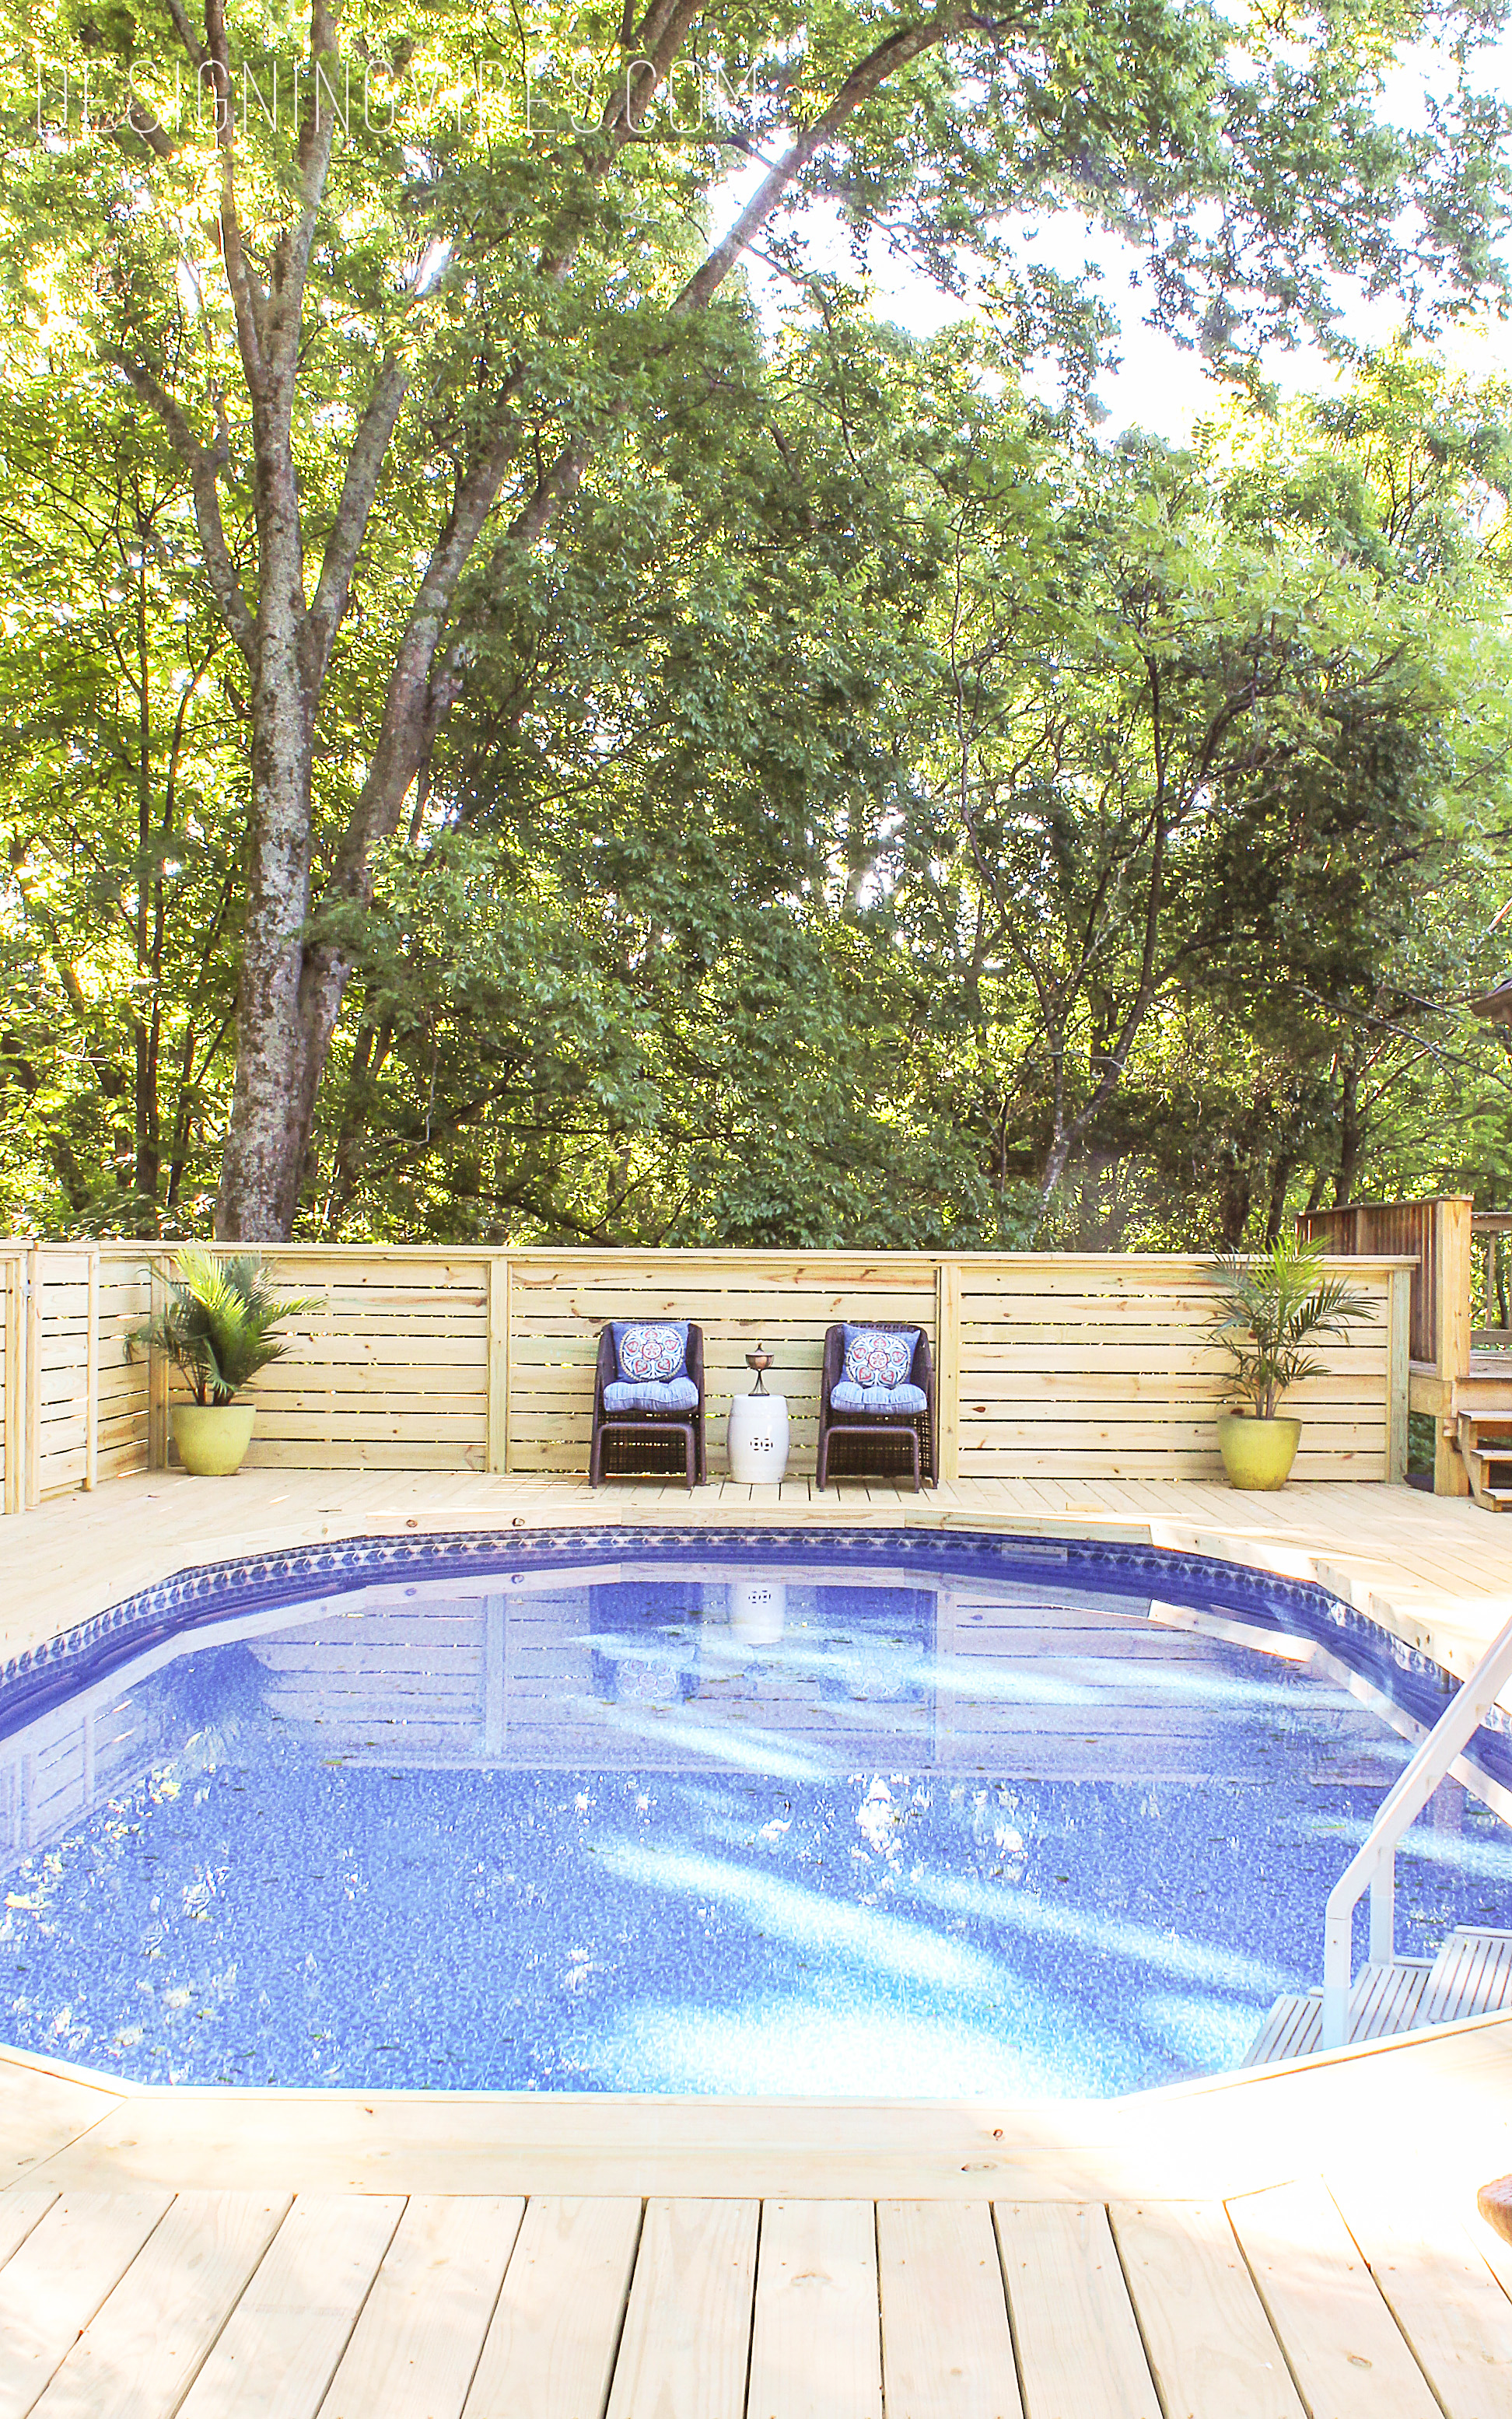 Jacuzzi Pool In Ground How To Make An Above Ground Pool Look Inground Pool Deck Ideas